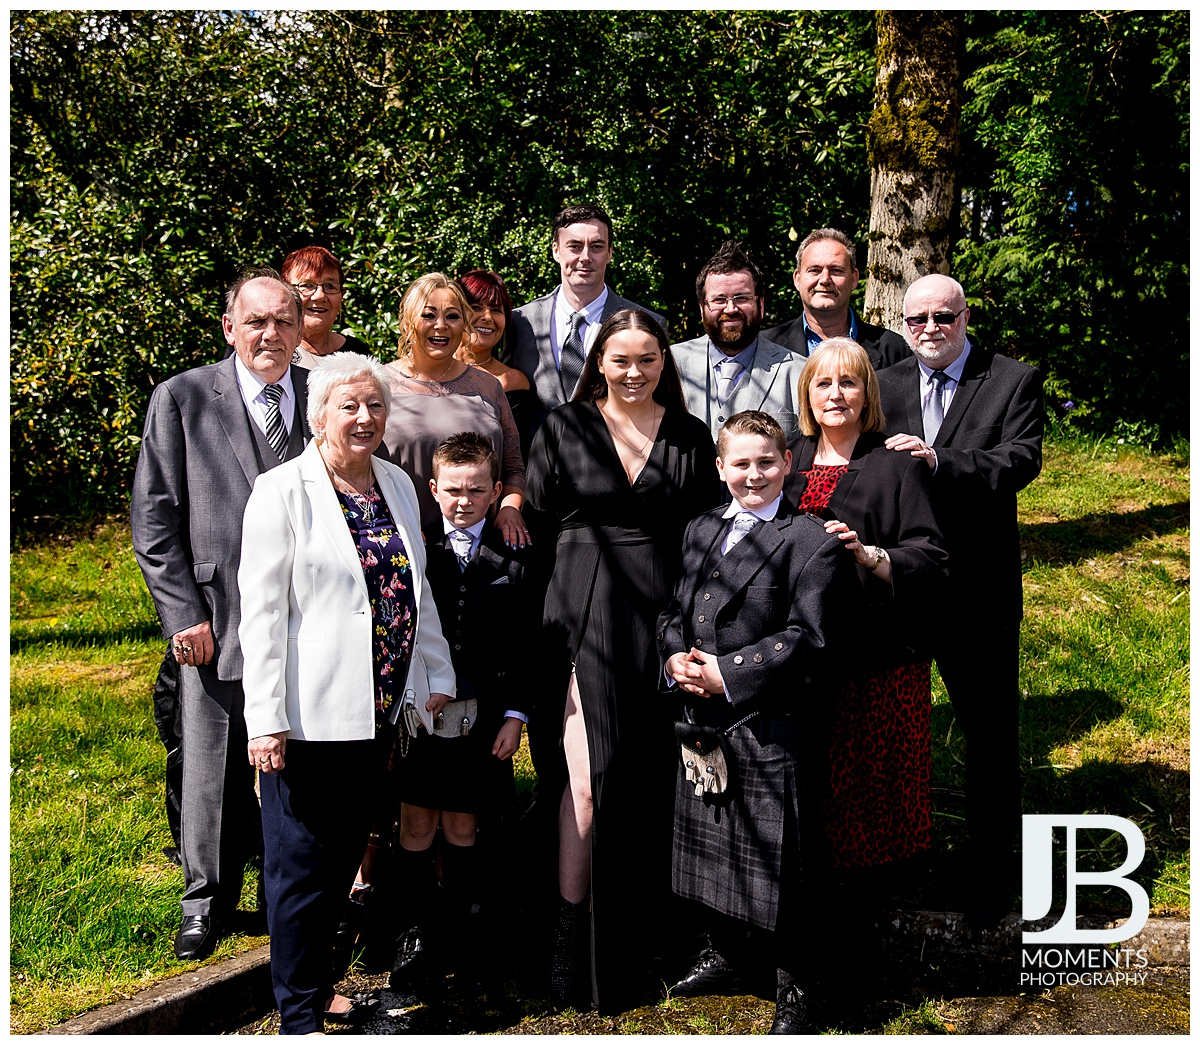 Christening and Communion Photography by JB Moments Photography